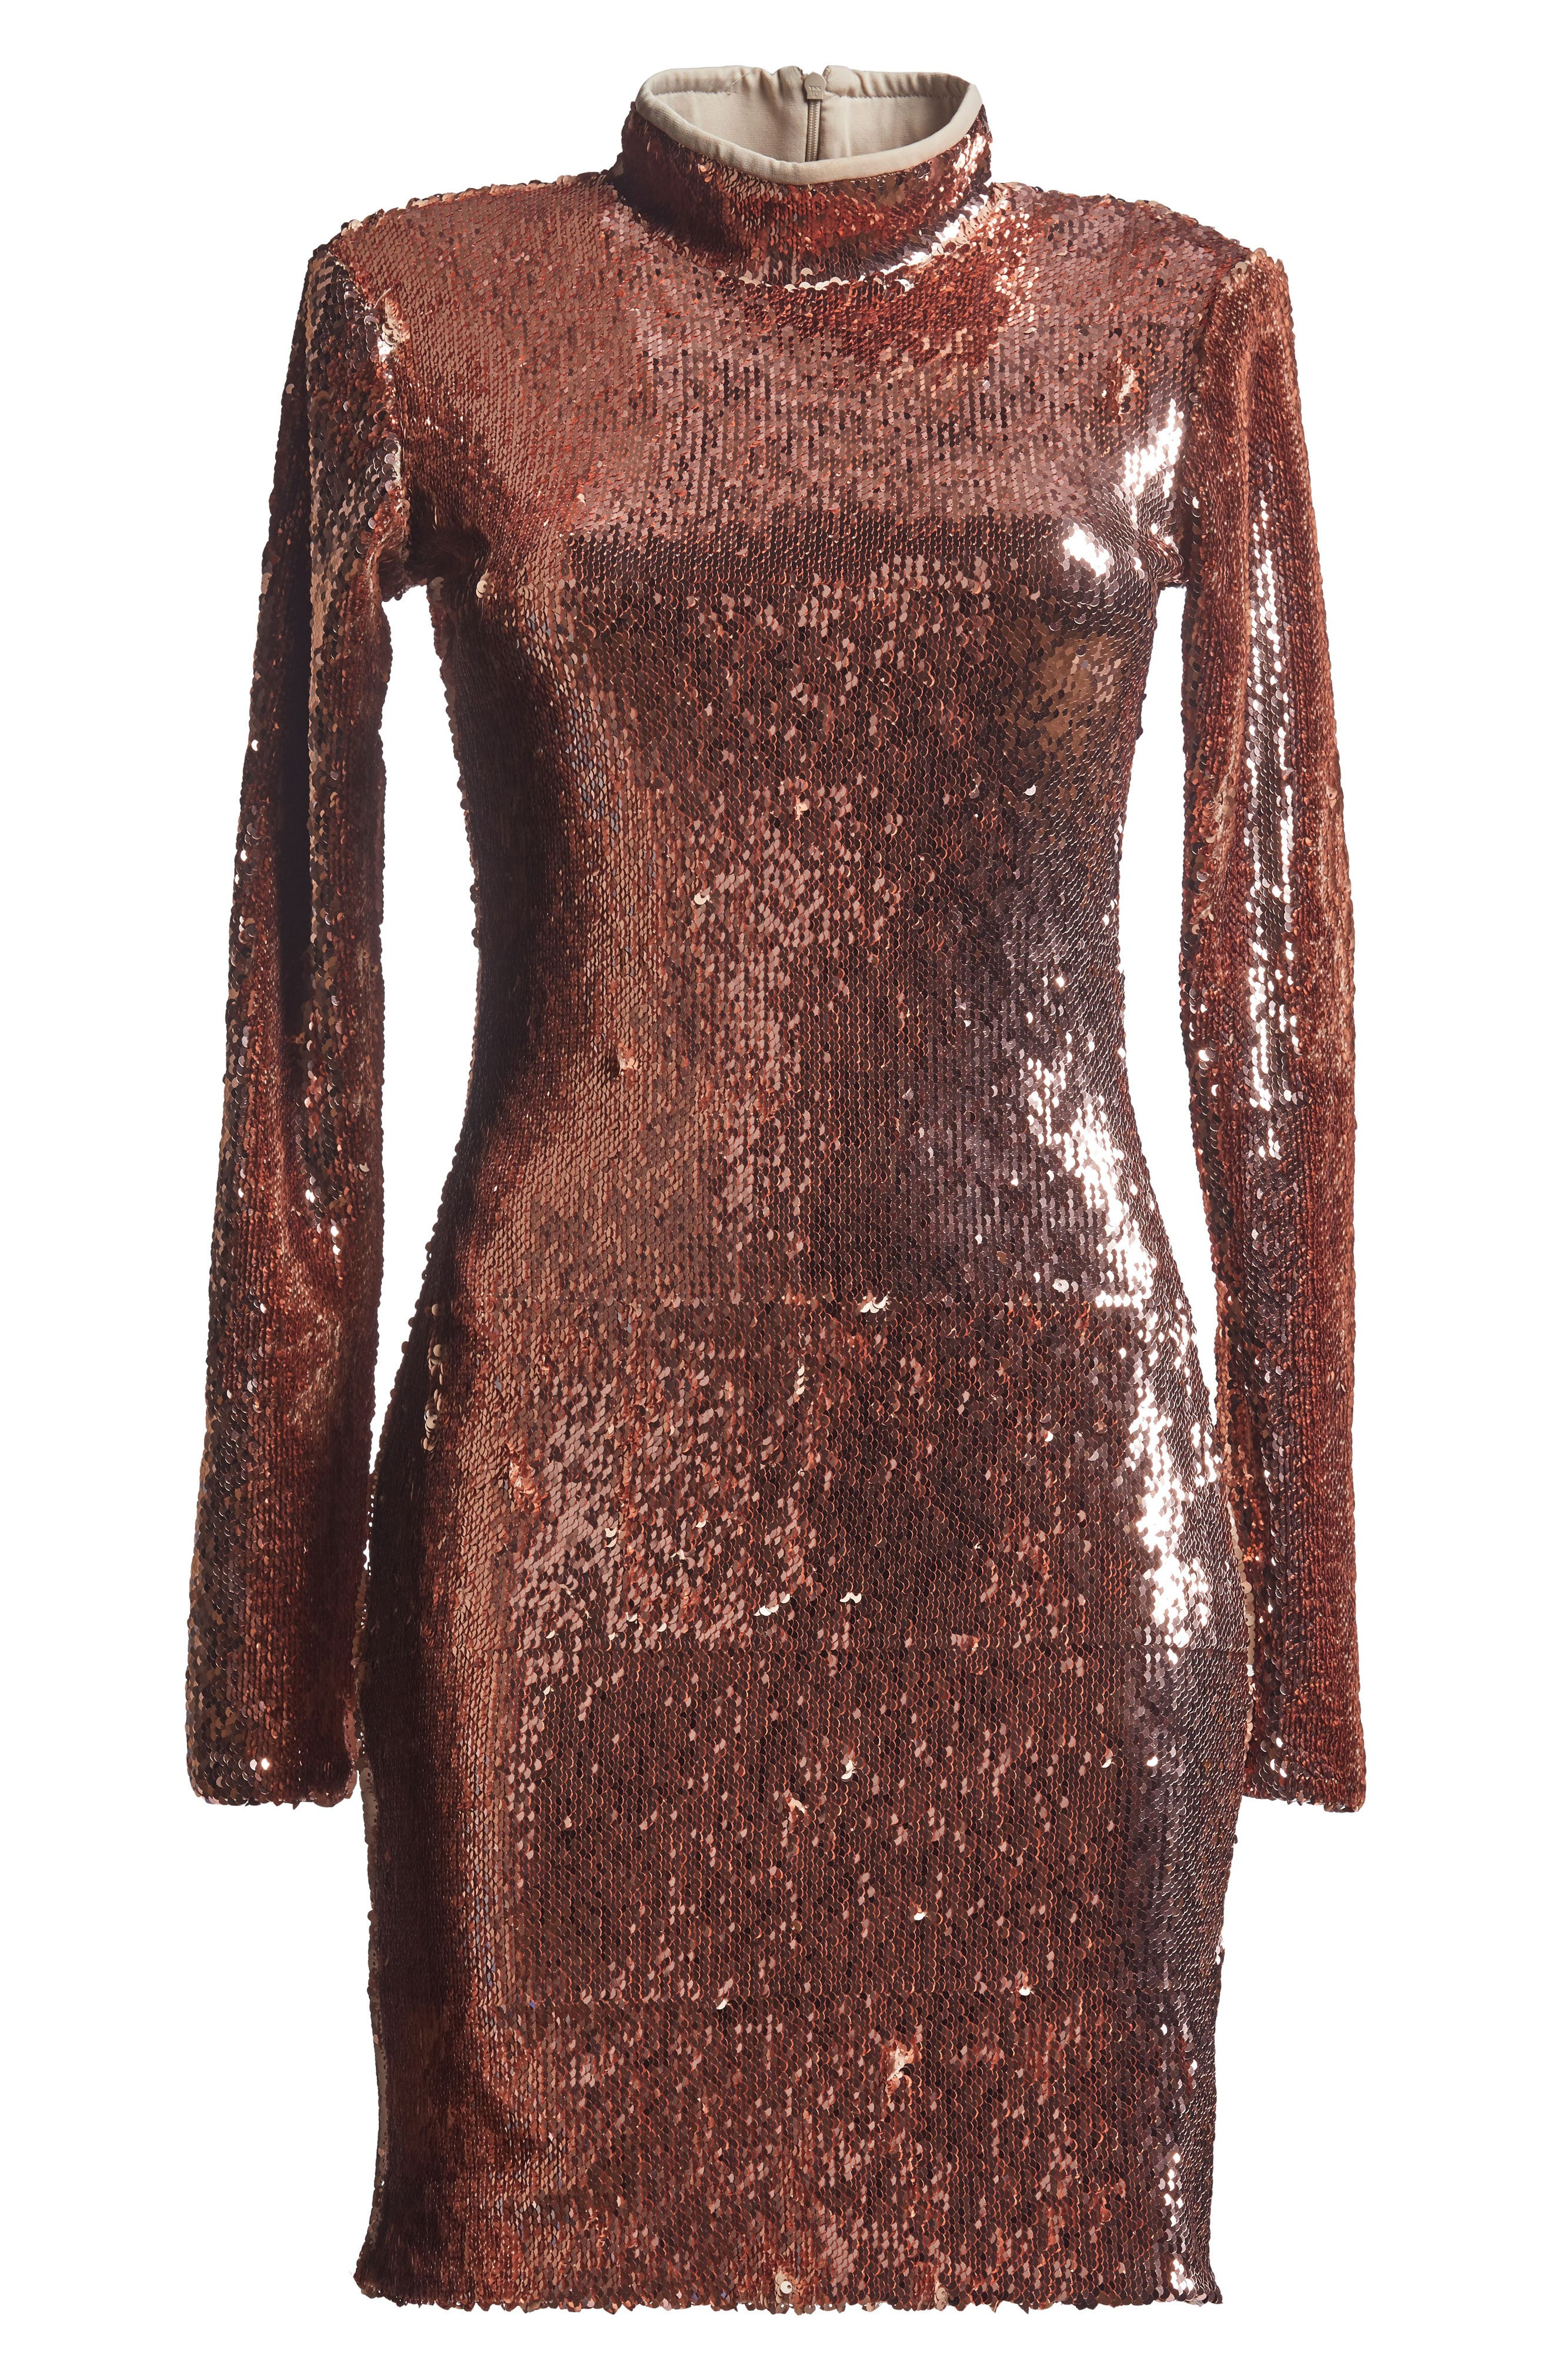 Katy Reversible Sequin Body-Con Dress,                             Alternate thumbnail 7, color,                             Rose Gold/ Nude